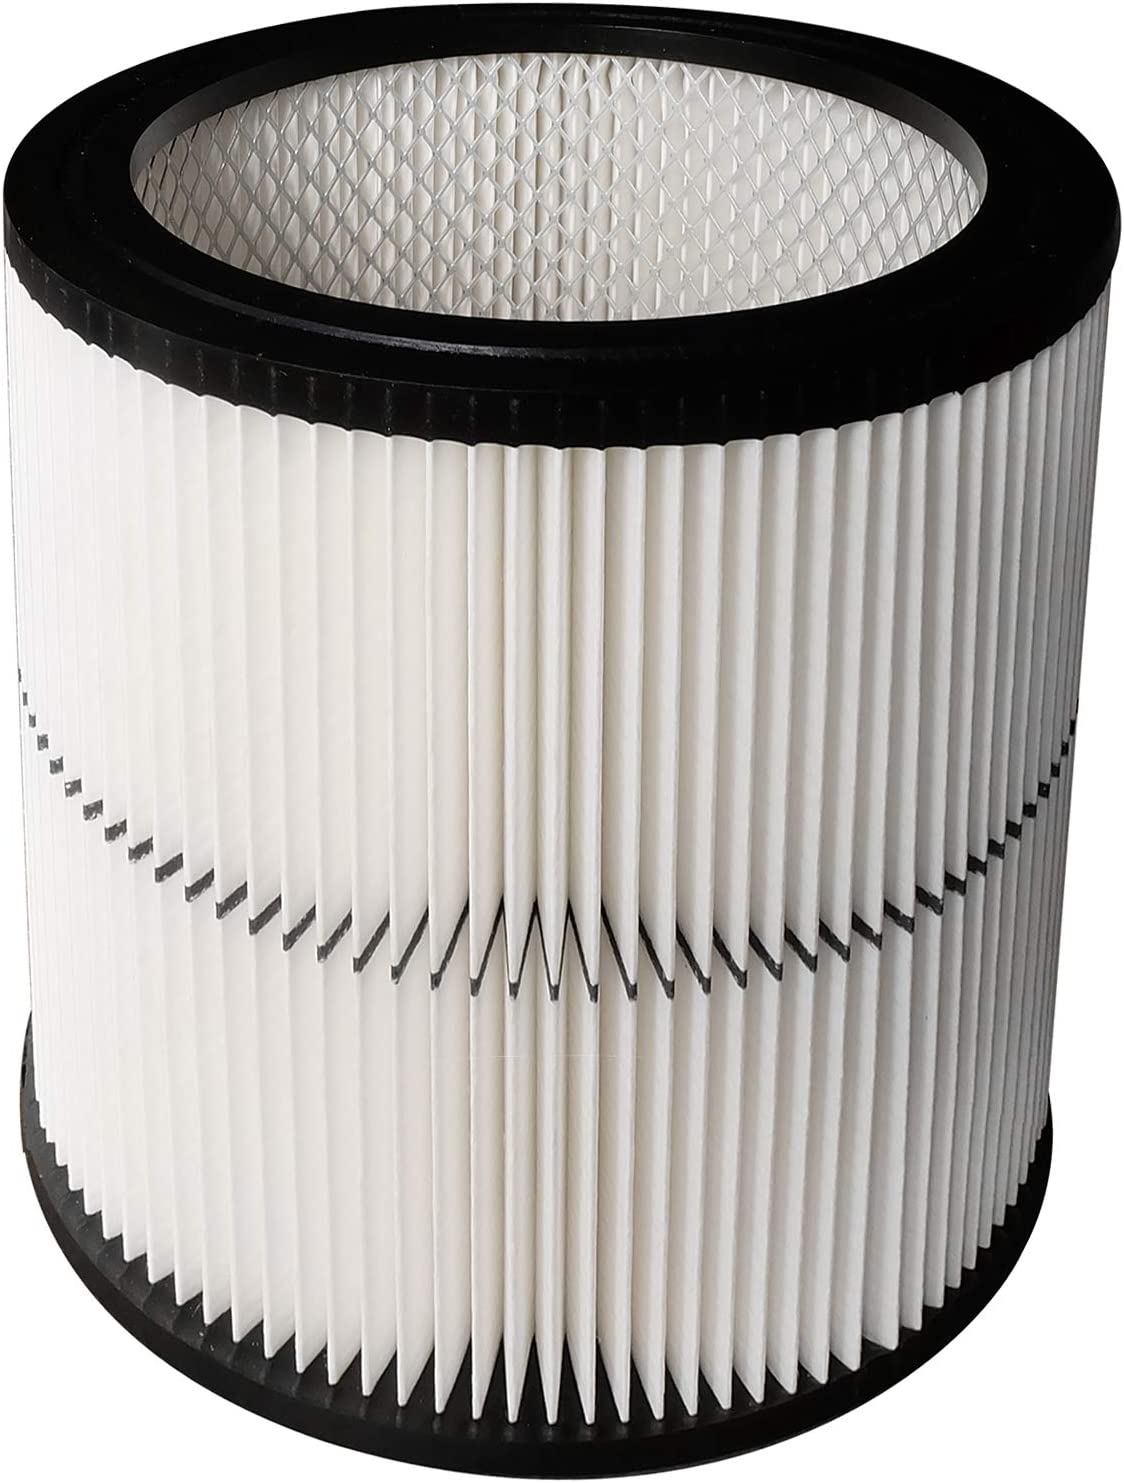 17884 Vacuun Clearance SALE Limited time Safety and trust Cartridge Filter fit 9-17884 for 17935 Craftsman 17